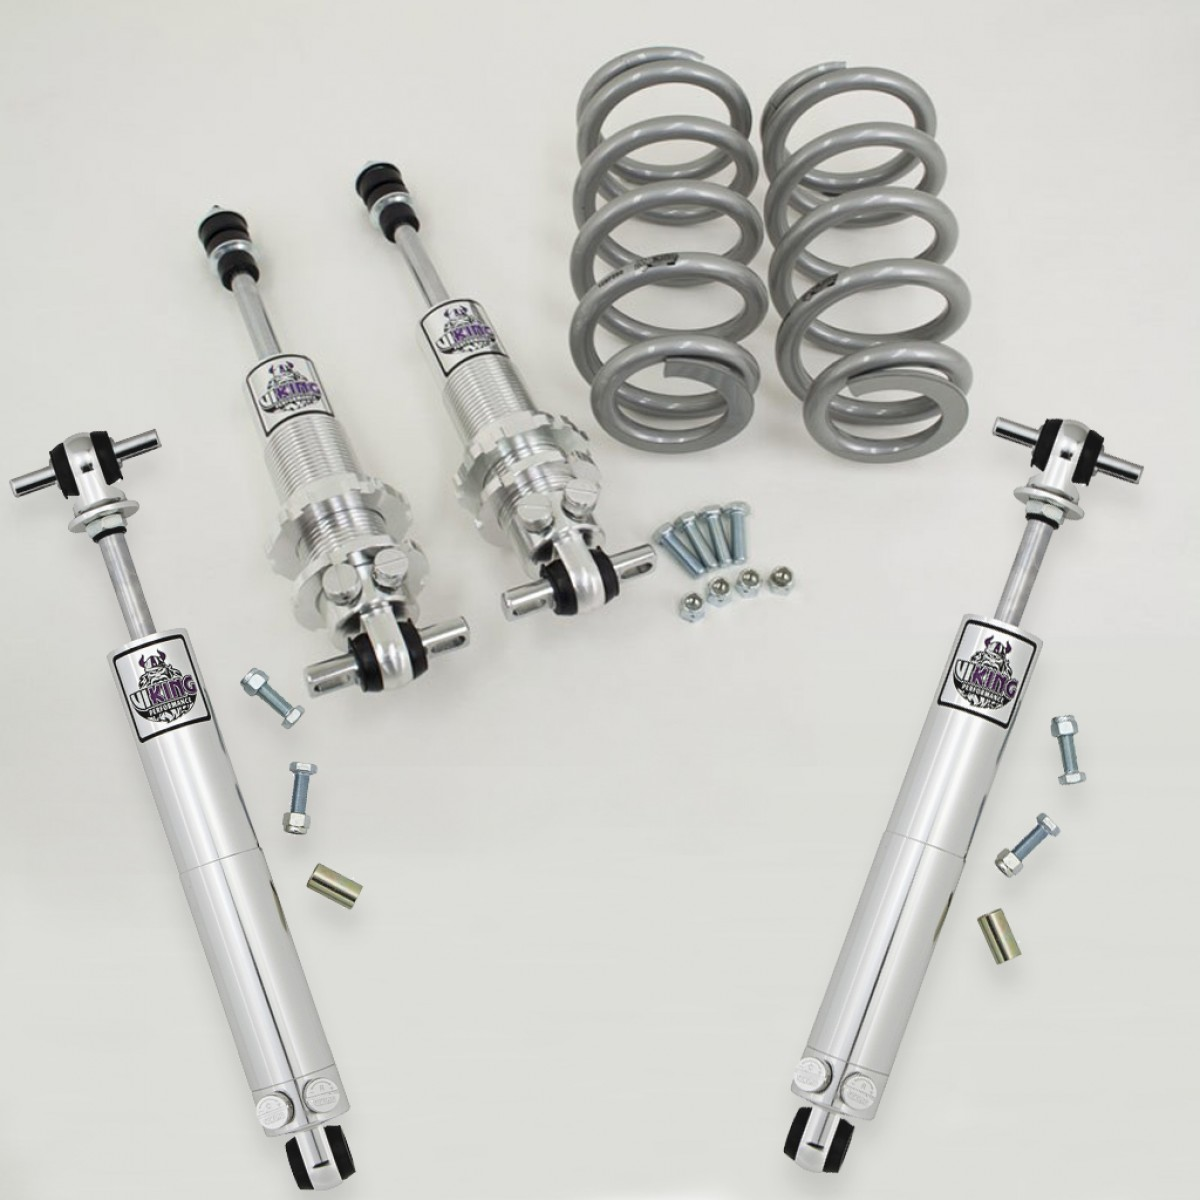 1964 1967 Chevy El Camino Front Rear Coil Over Shock Package Wiring Diagram Viking